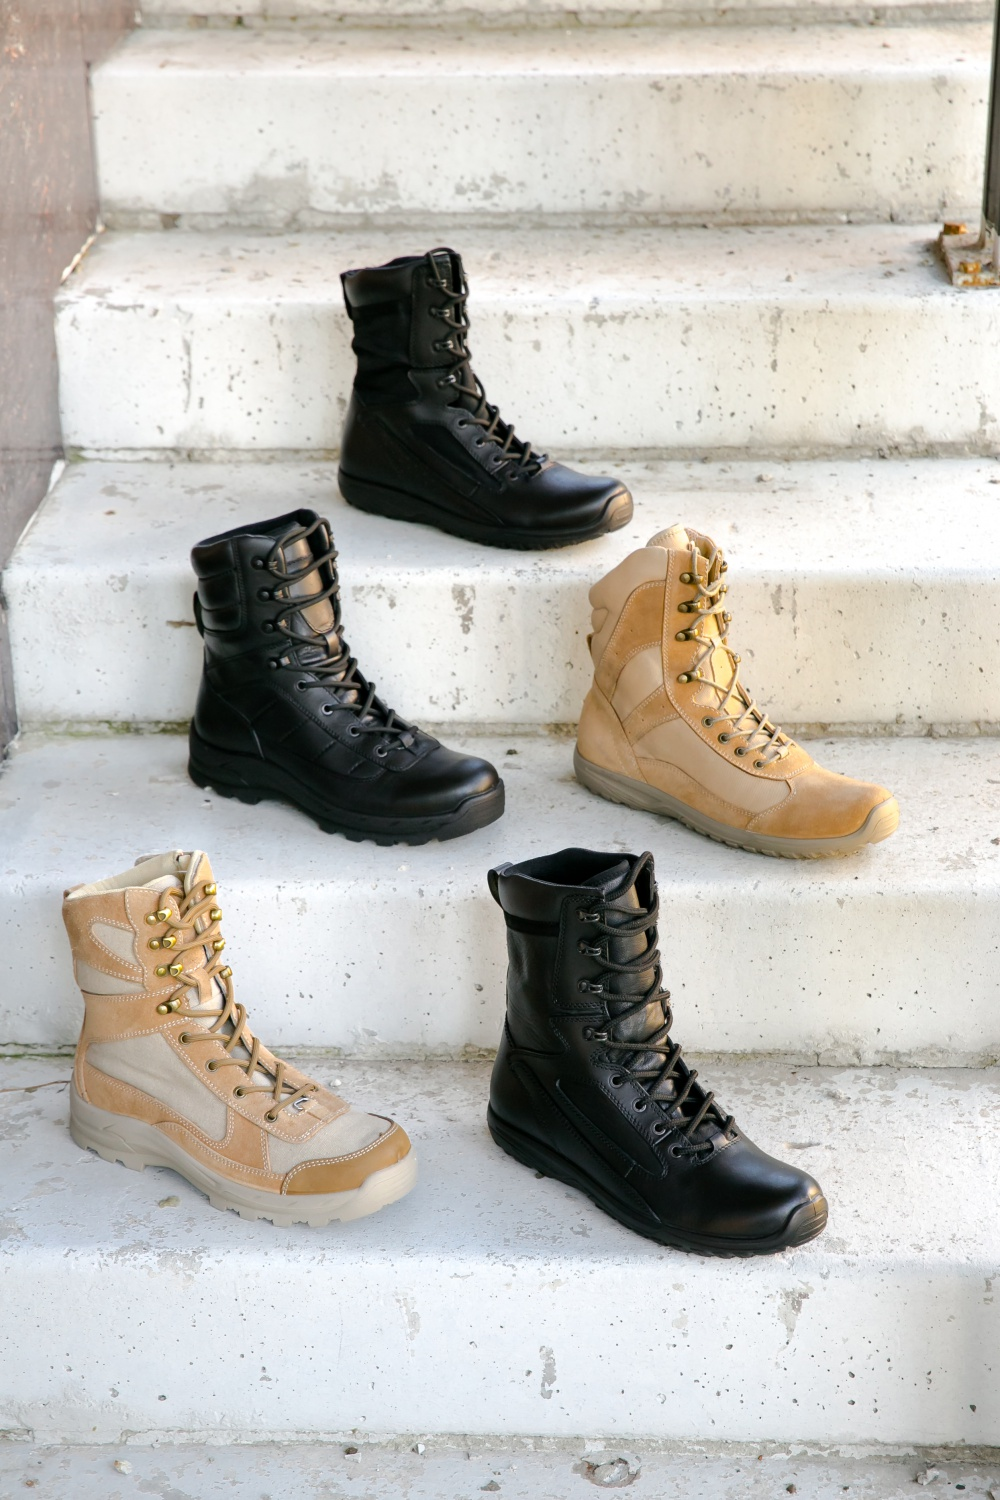 Russian Shoes has created a collection of military shoes